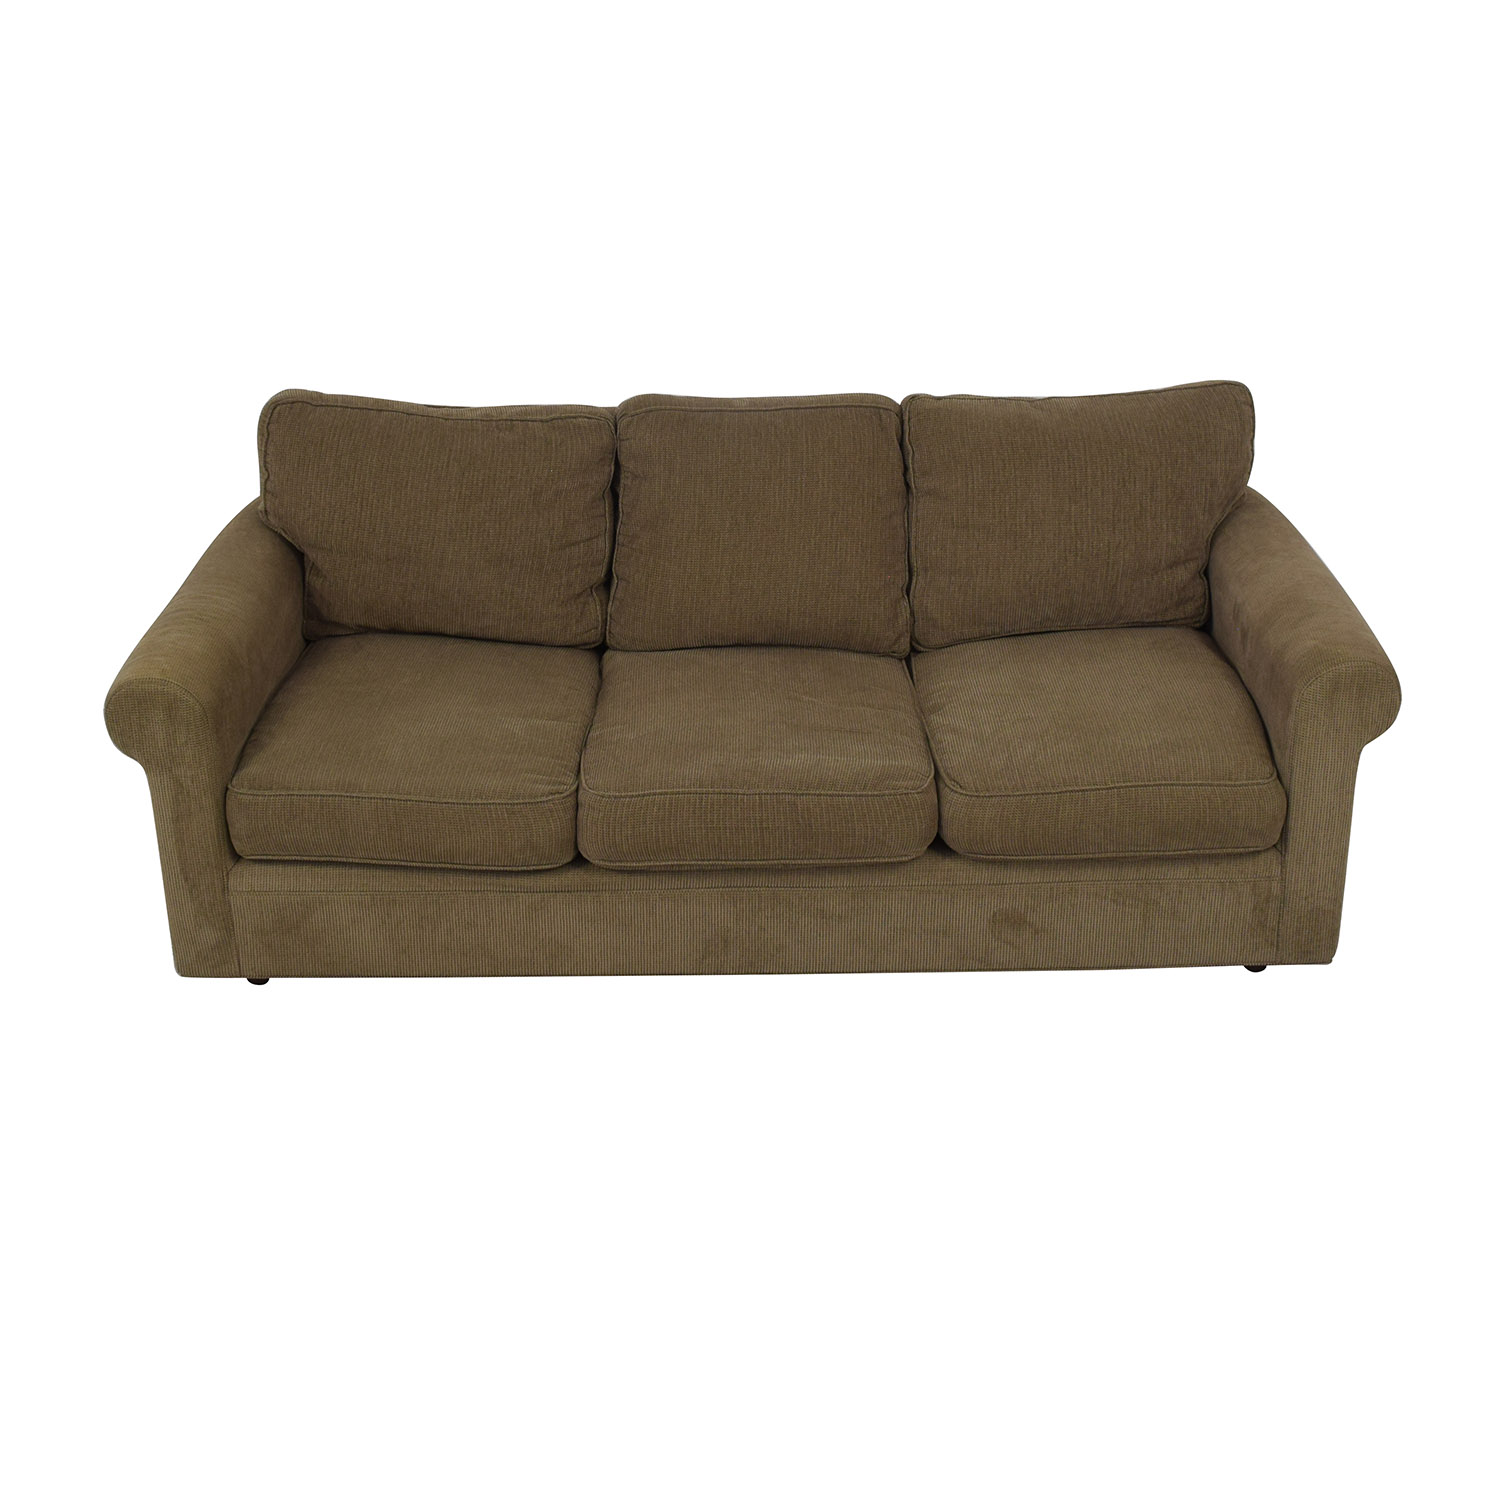 Crate & Barrel Crate & Barrel 3-Seat Rolled Arm Sofa for sale